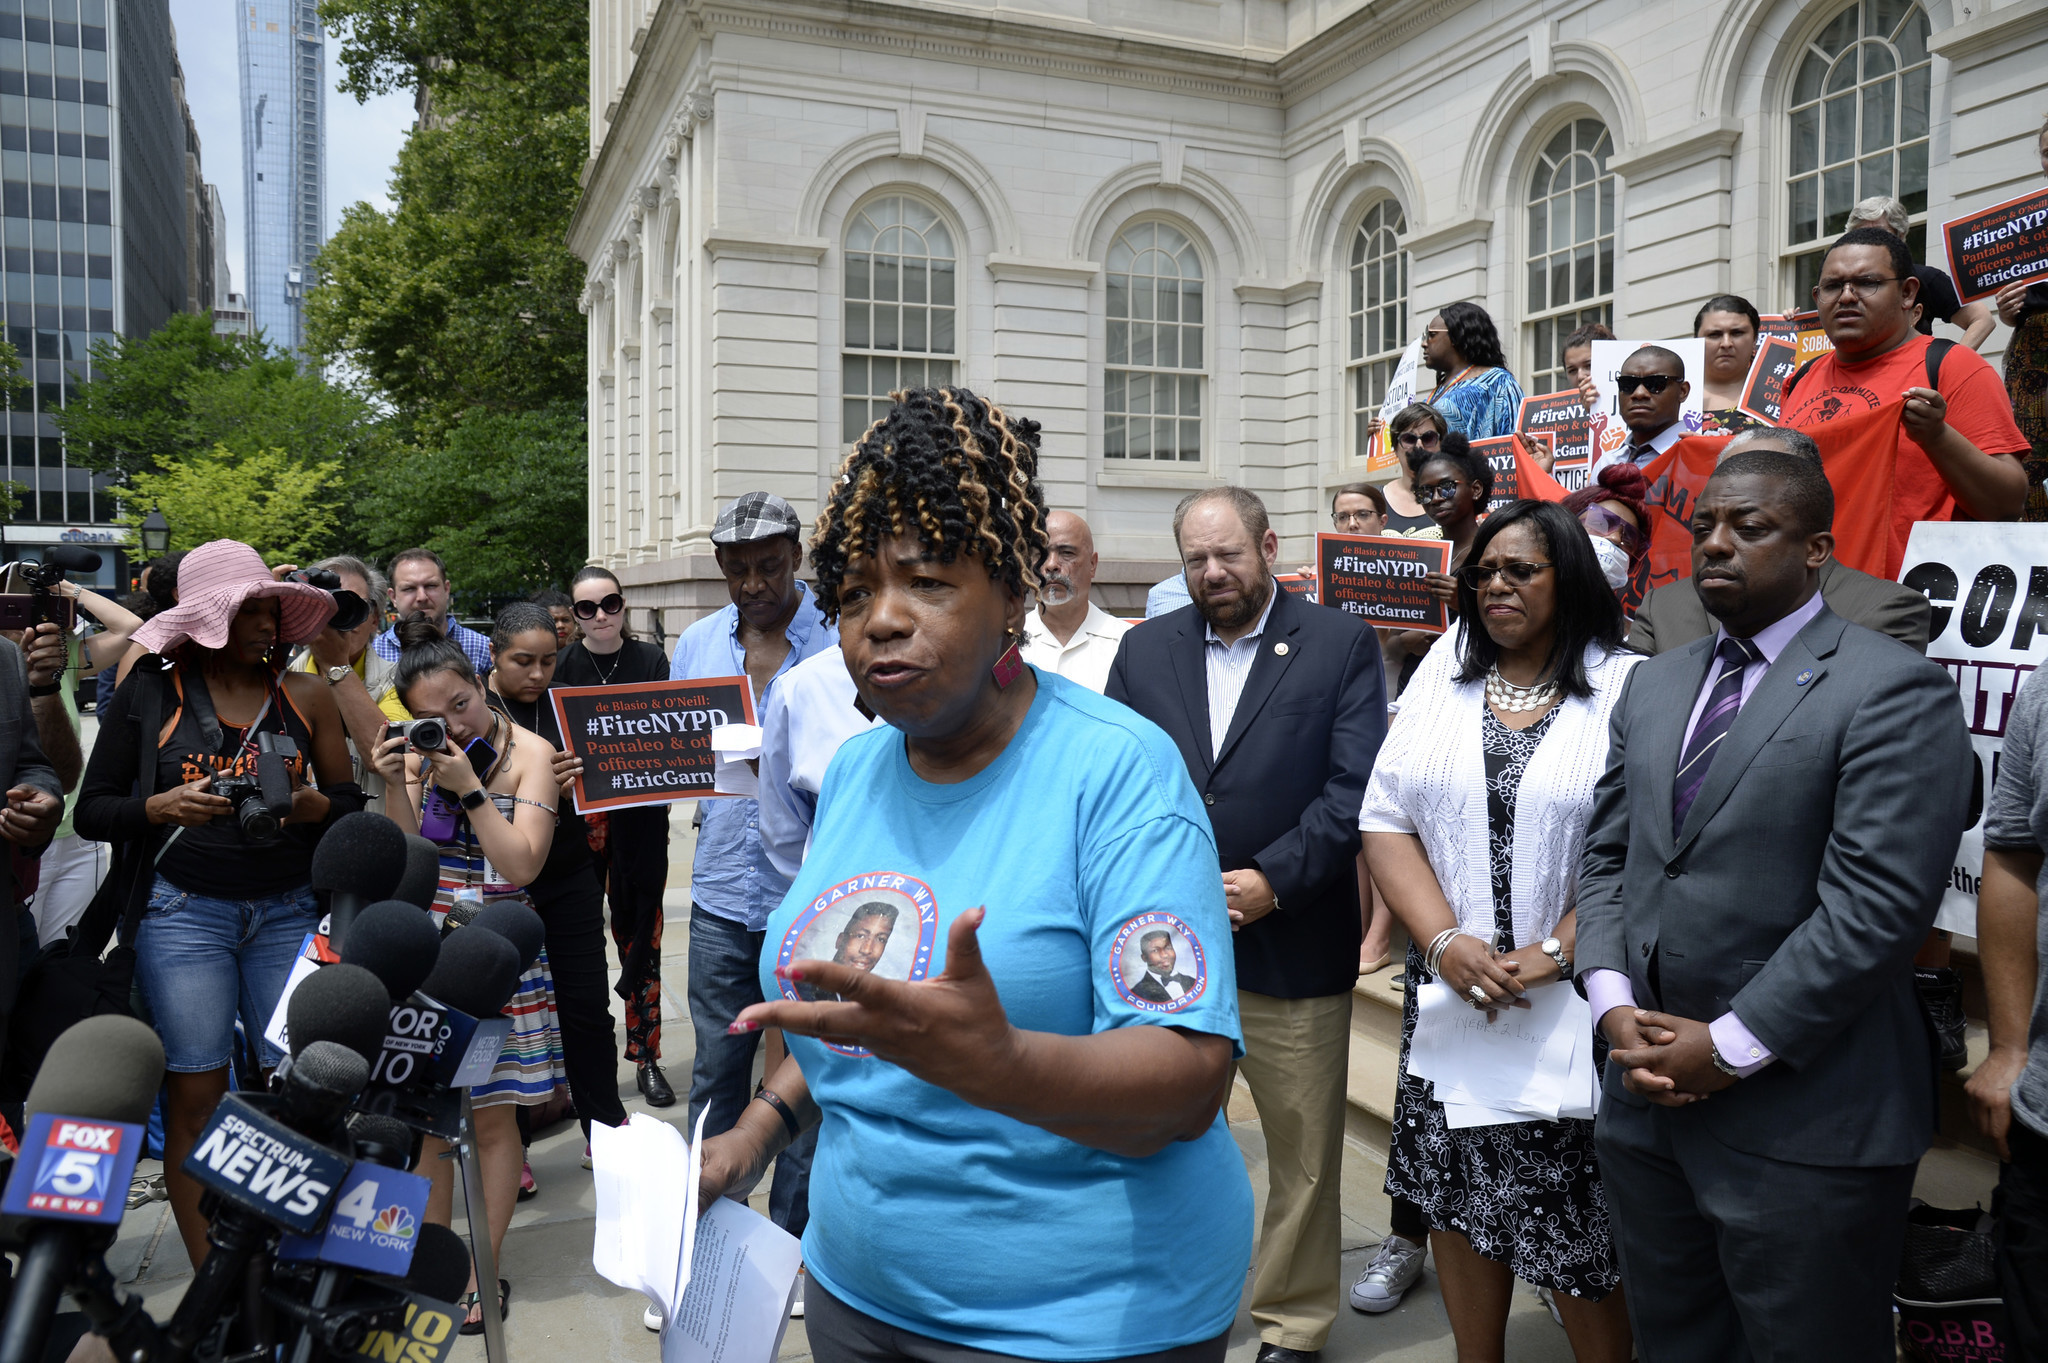 Eric Garner's mom still outraged, still waiting for justice four years down the road | New York Daily News